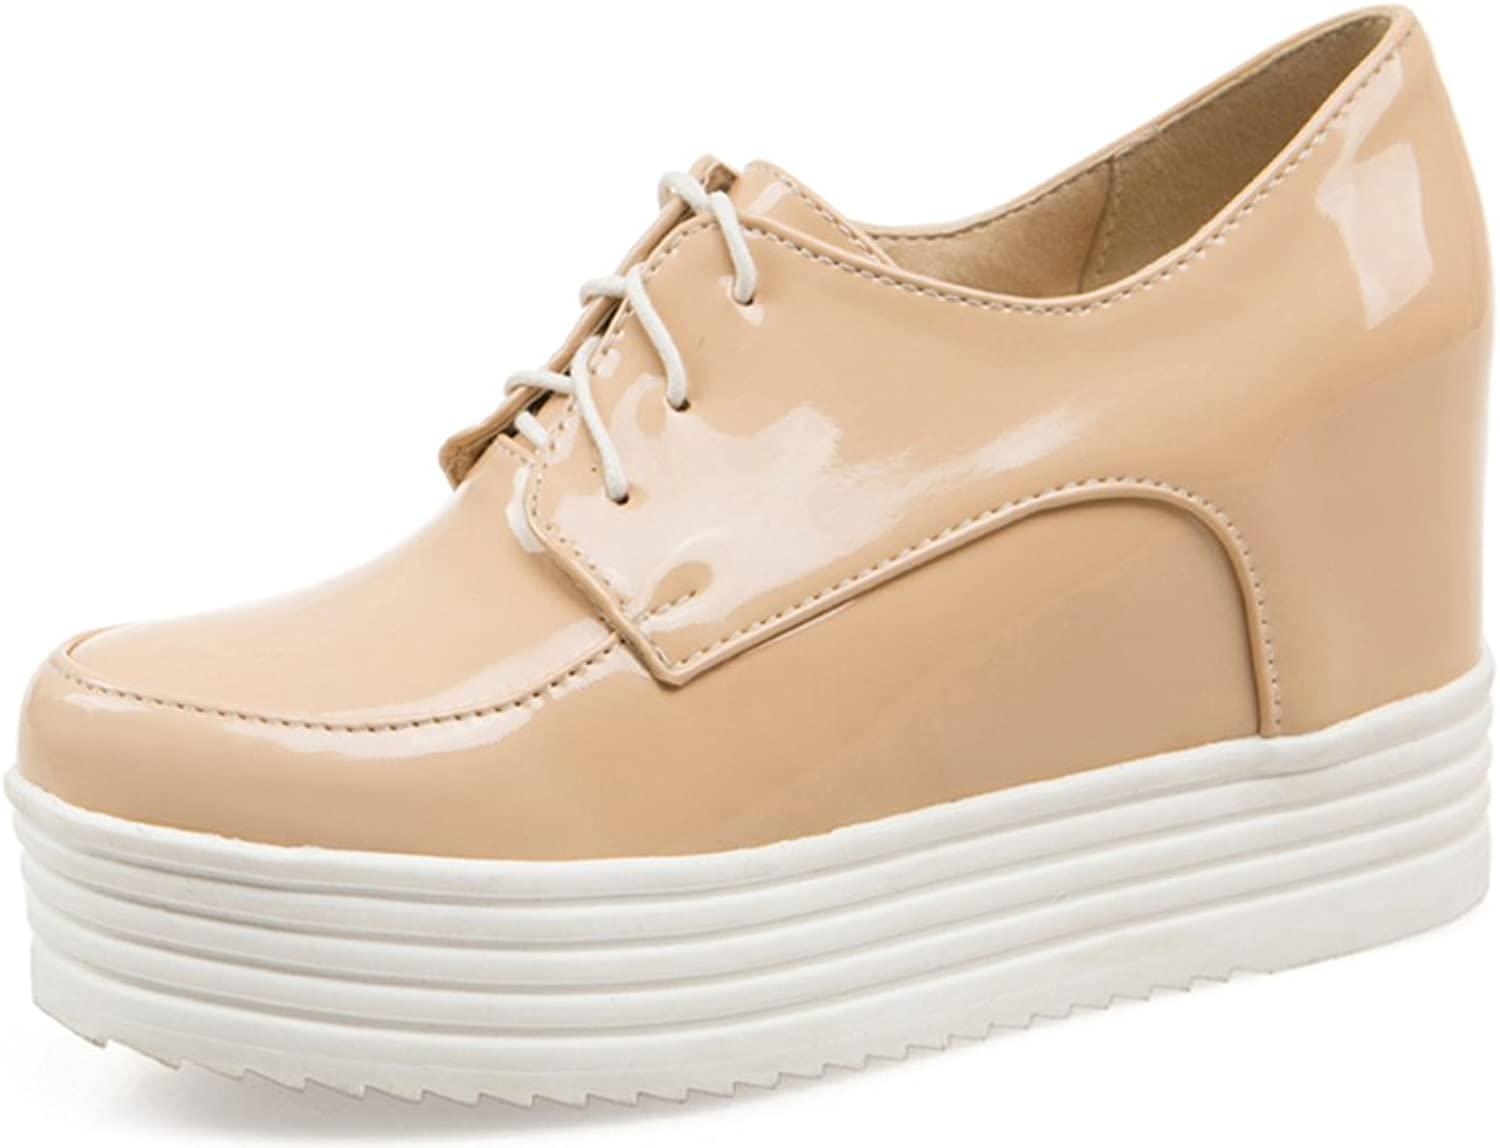 Cuckoo Round Toe Patent PU Leather Classic Oxford shoes